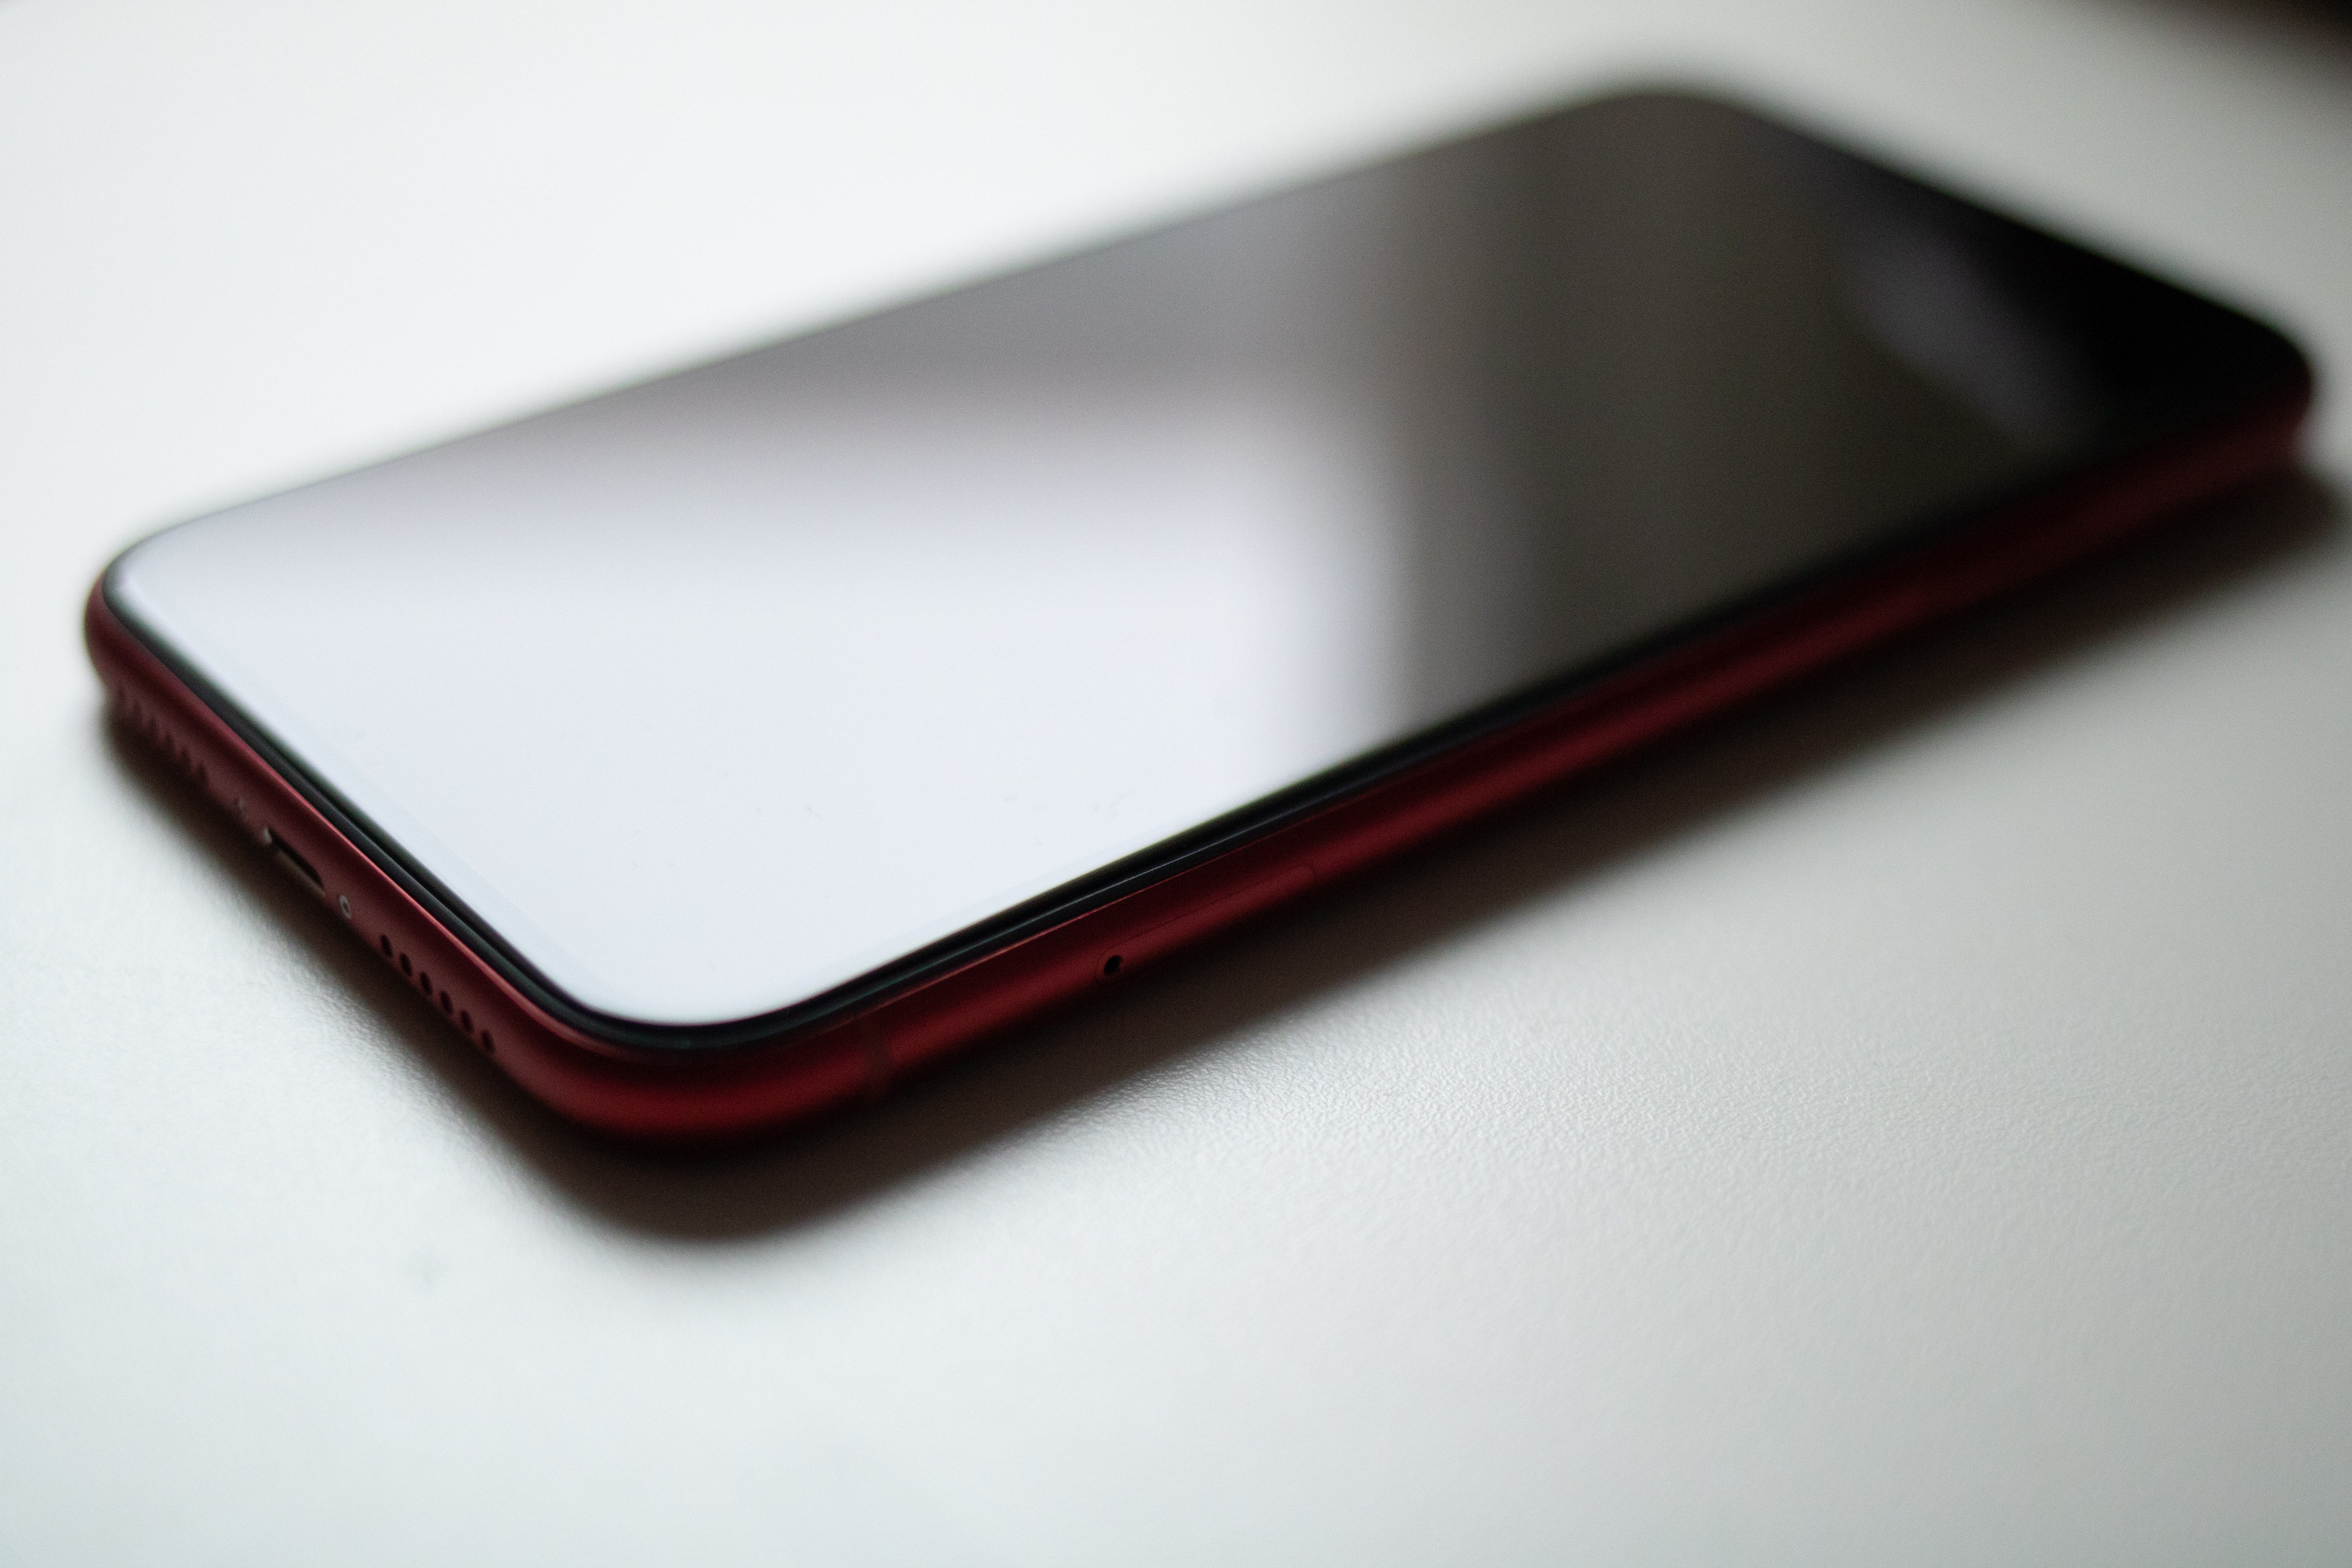 Red Smartphone on White Surface